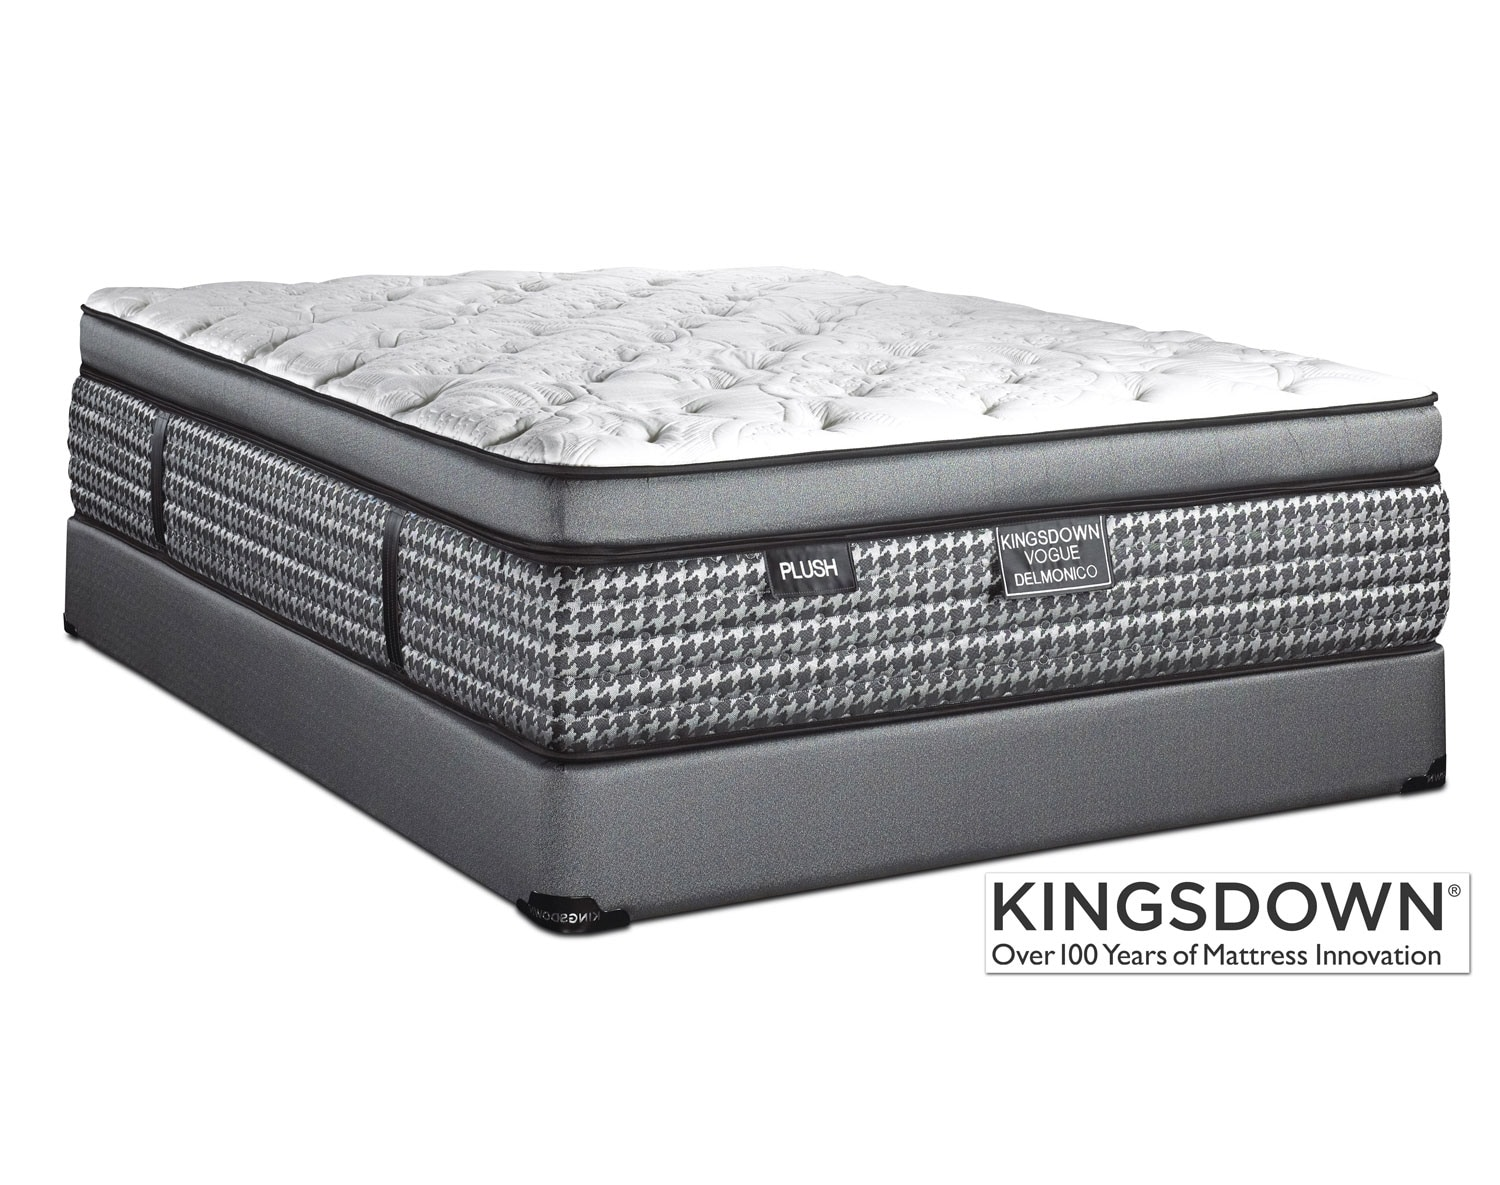 Kingsdown Delmonico Plush Mattress Collection